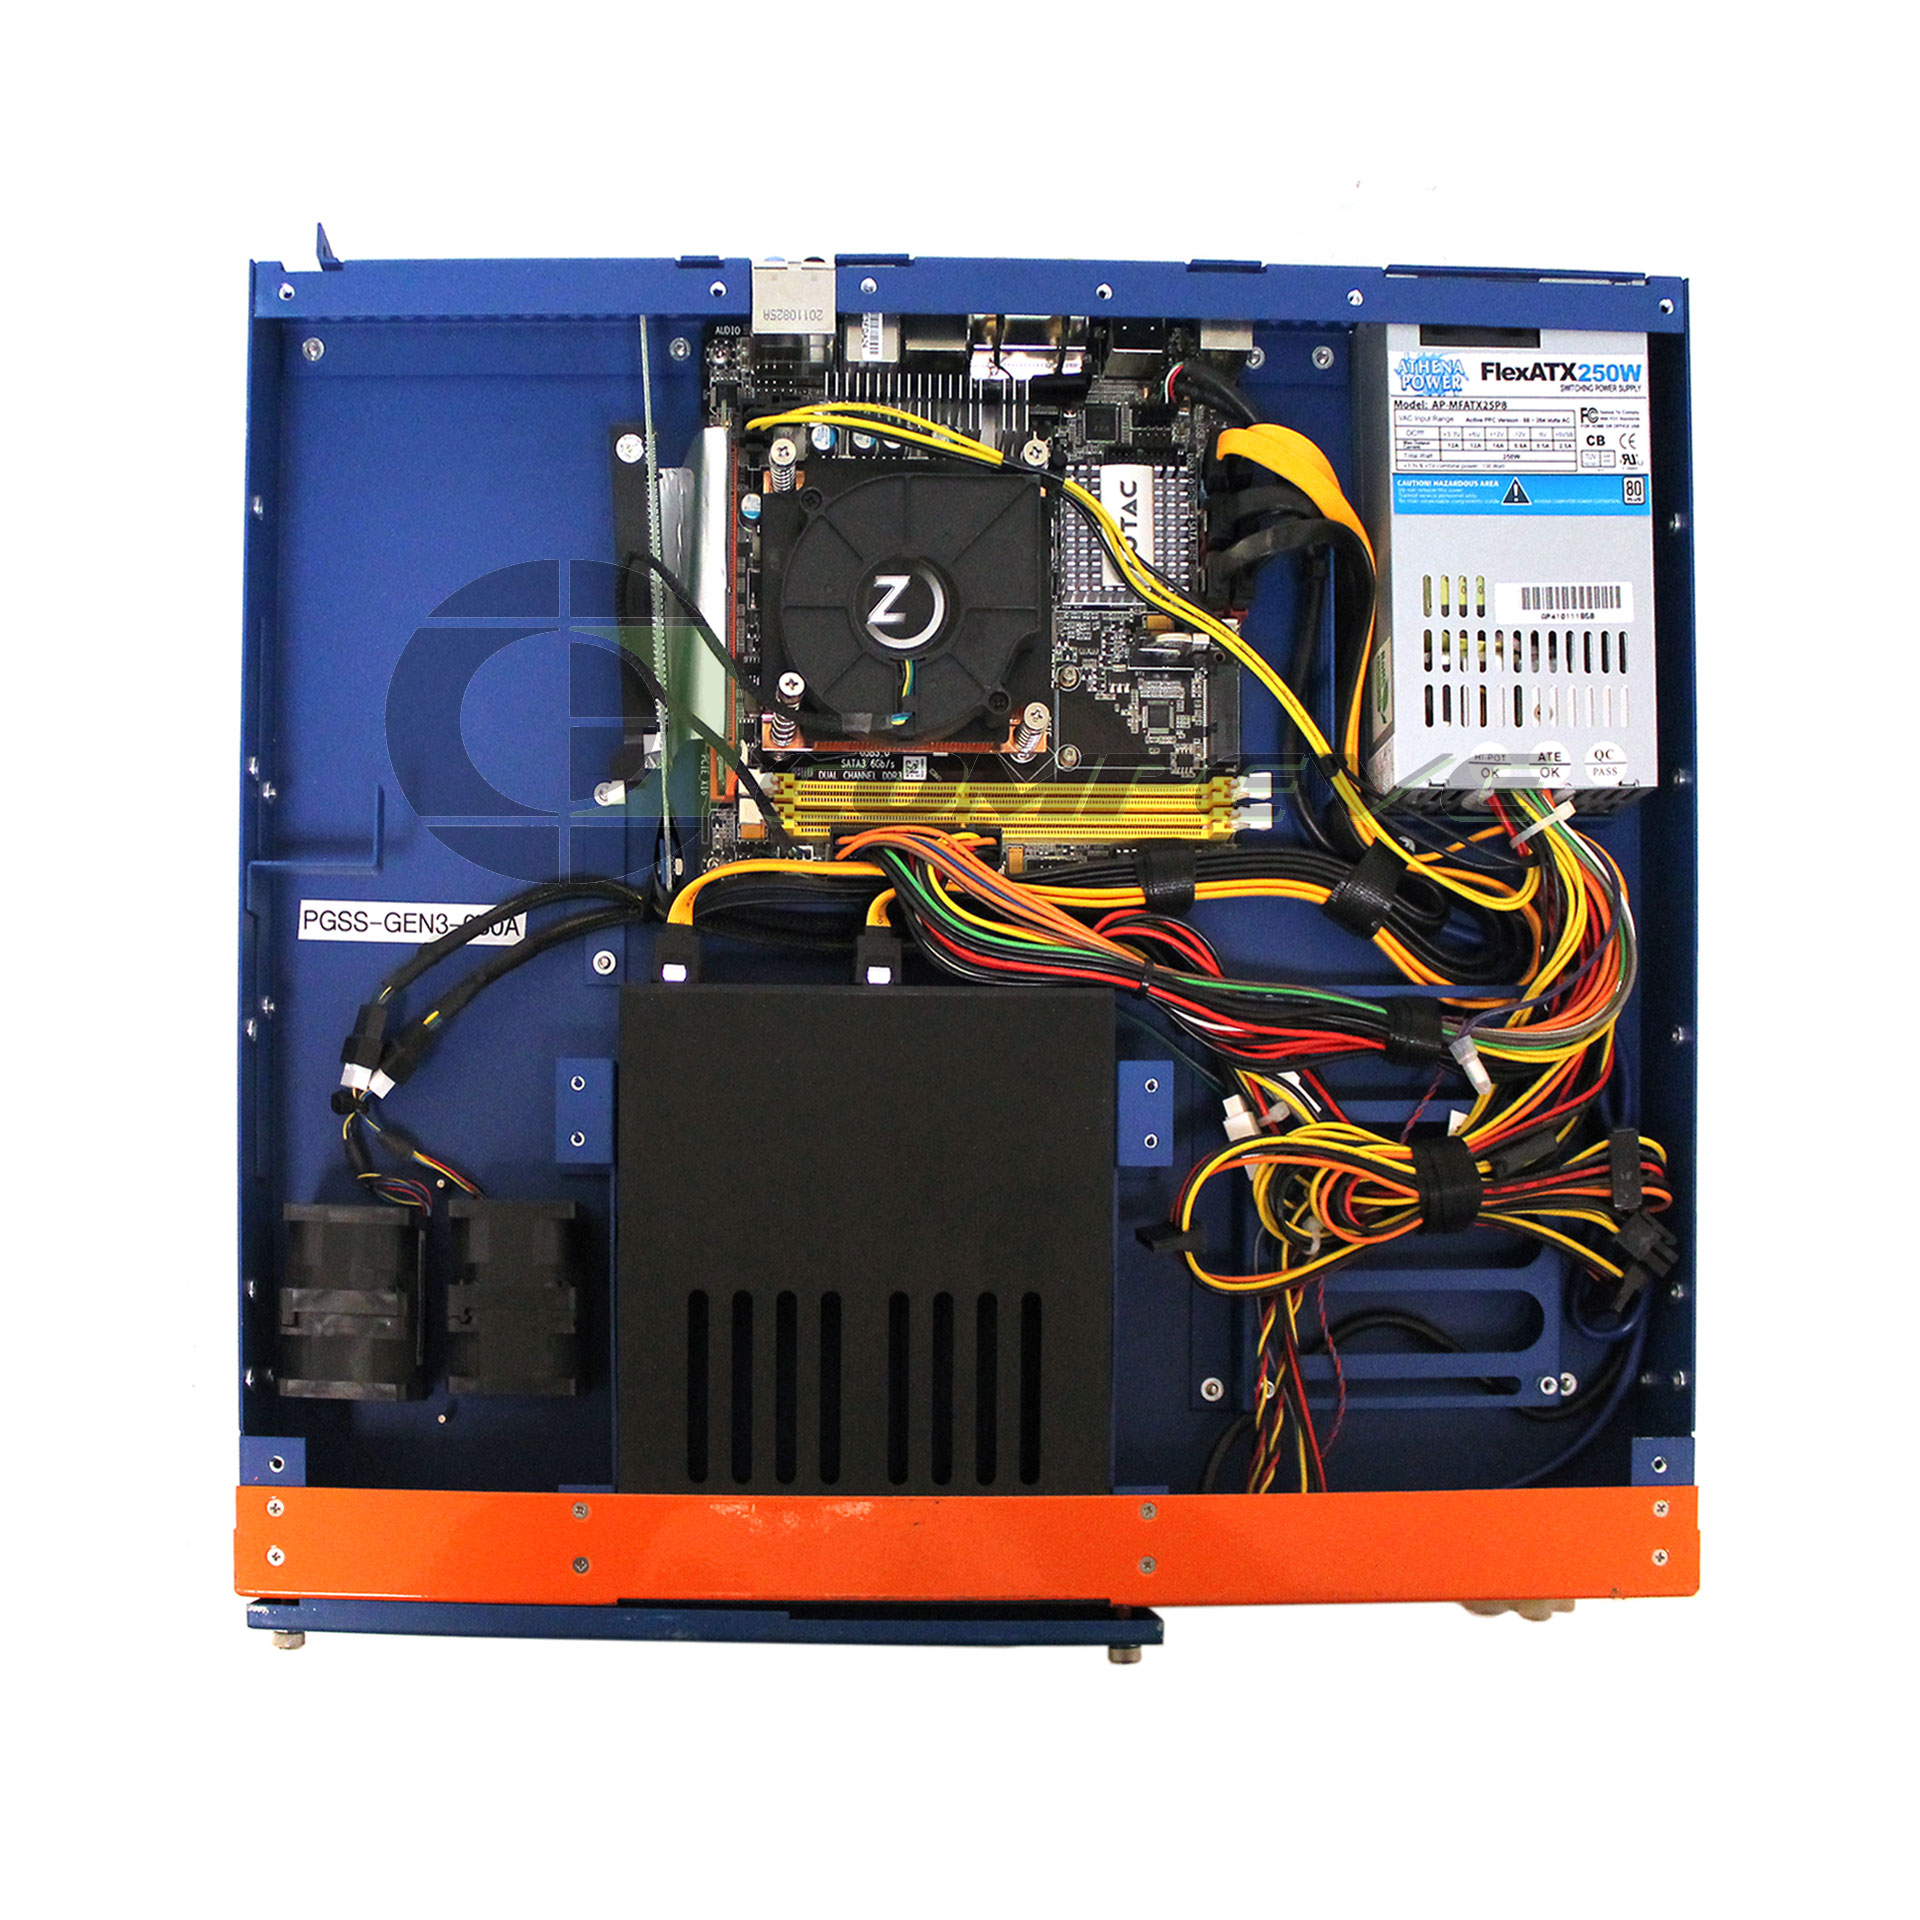 iStarUSA 1U Server ZOTAC H67ITX-C-E Motherboard Intel H67/  250W Power Supply/ x2 Fans / Riser Card / LCD Screen